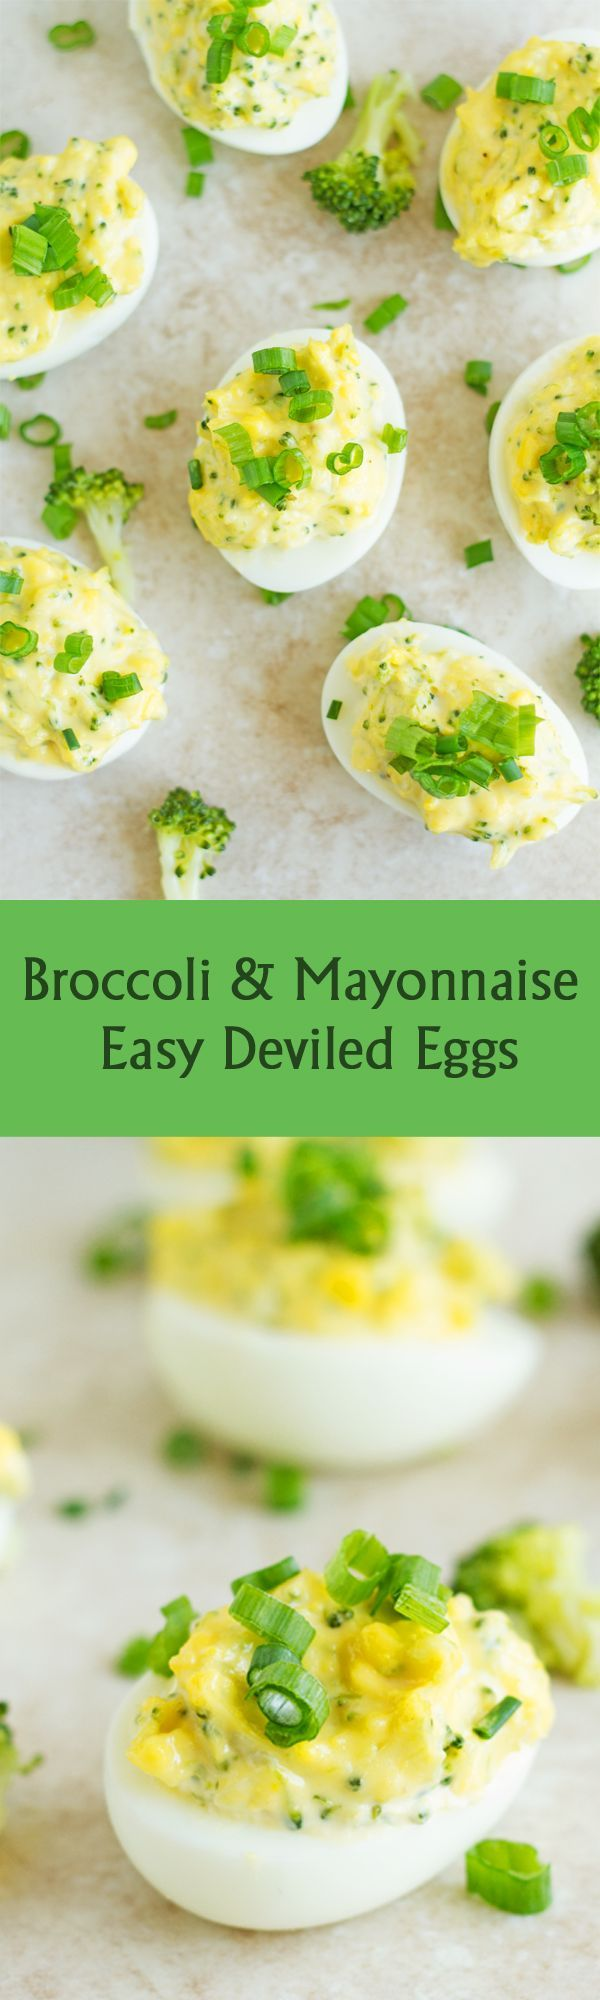 Broccoli & Mayonnaise Easy Deviled Eggs - Vegetarian easy deviled eggs recipe stuffed with broccoli and mayonnaise. This is perfect for Easter, brunch, appetizer or any Party! It can be served with bread of bun by http://ilonaspassion.com I /ilonaspassion/